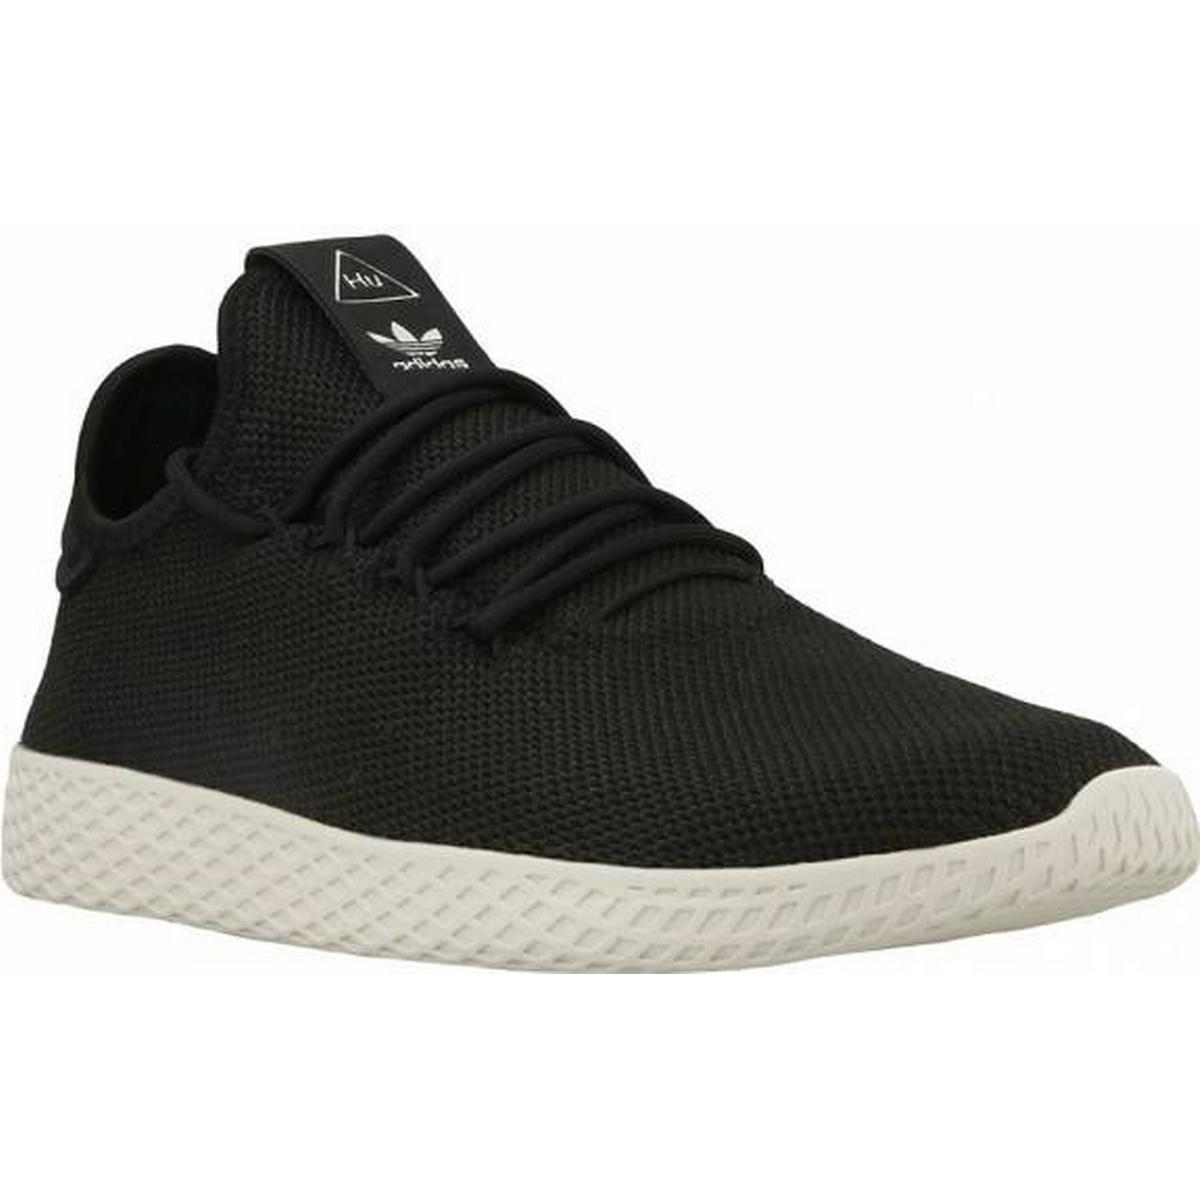 Dam Herr Adidas Pw Tennis Hu Casual, Low top, Tennis By2673<